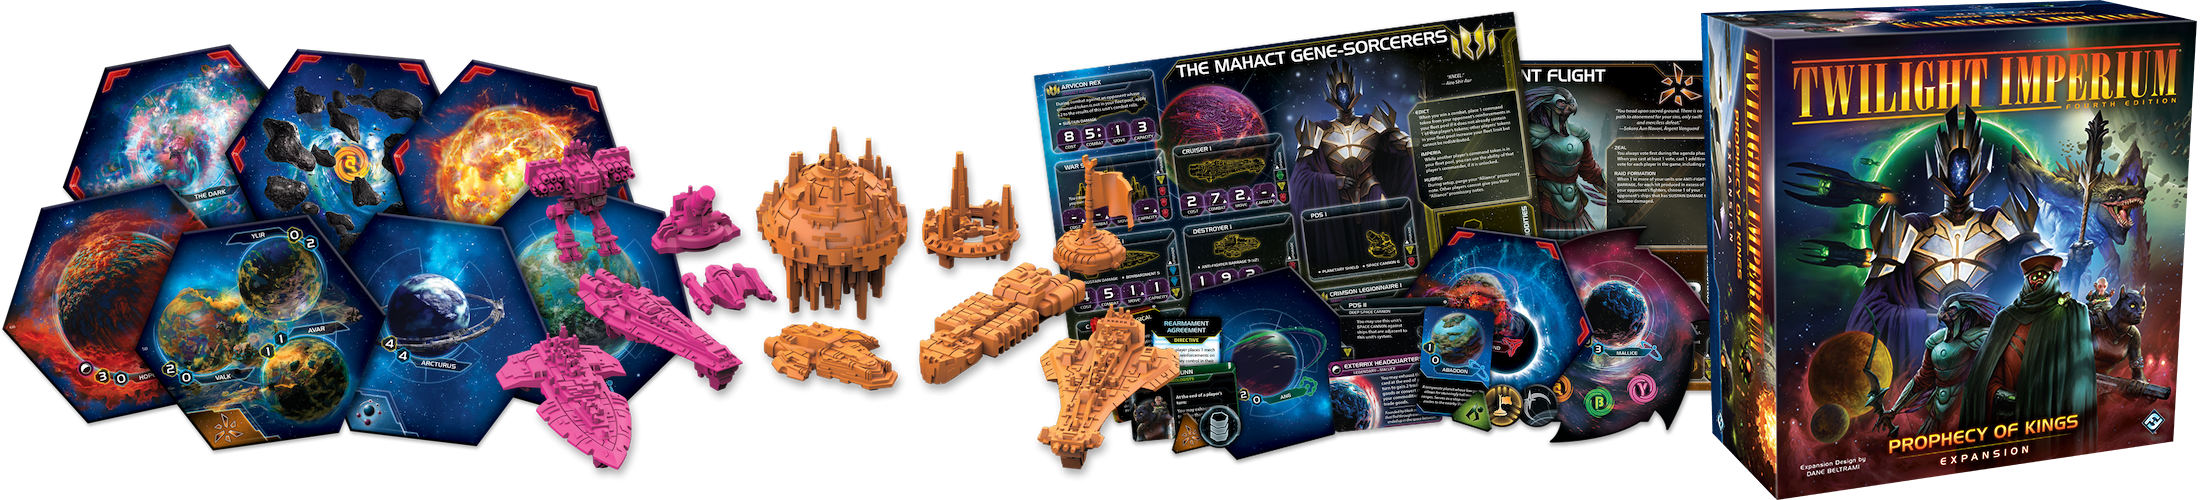 Twilight Imperium Prophecy of Kings